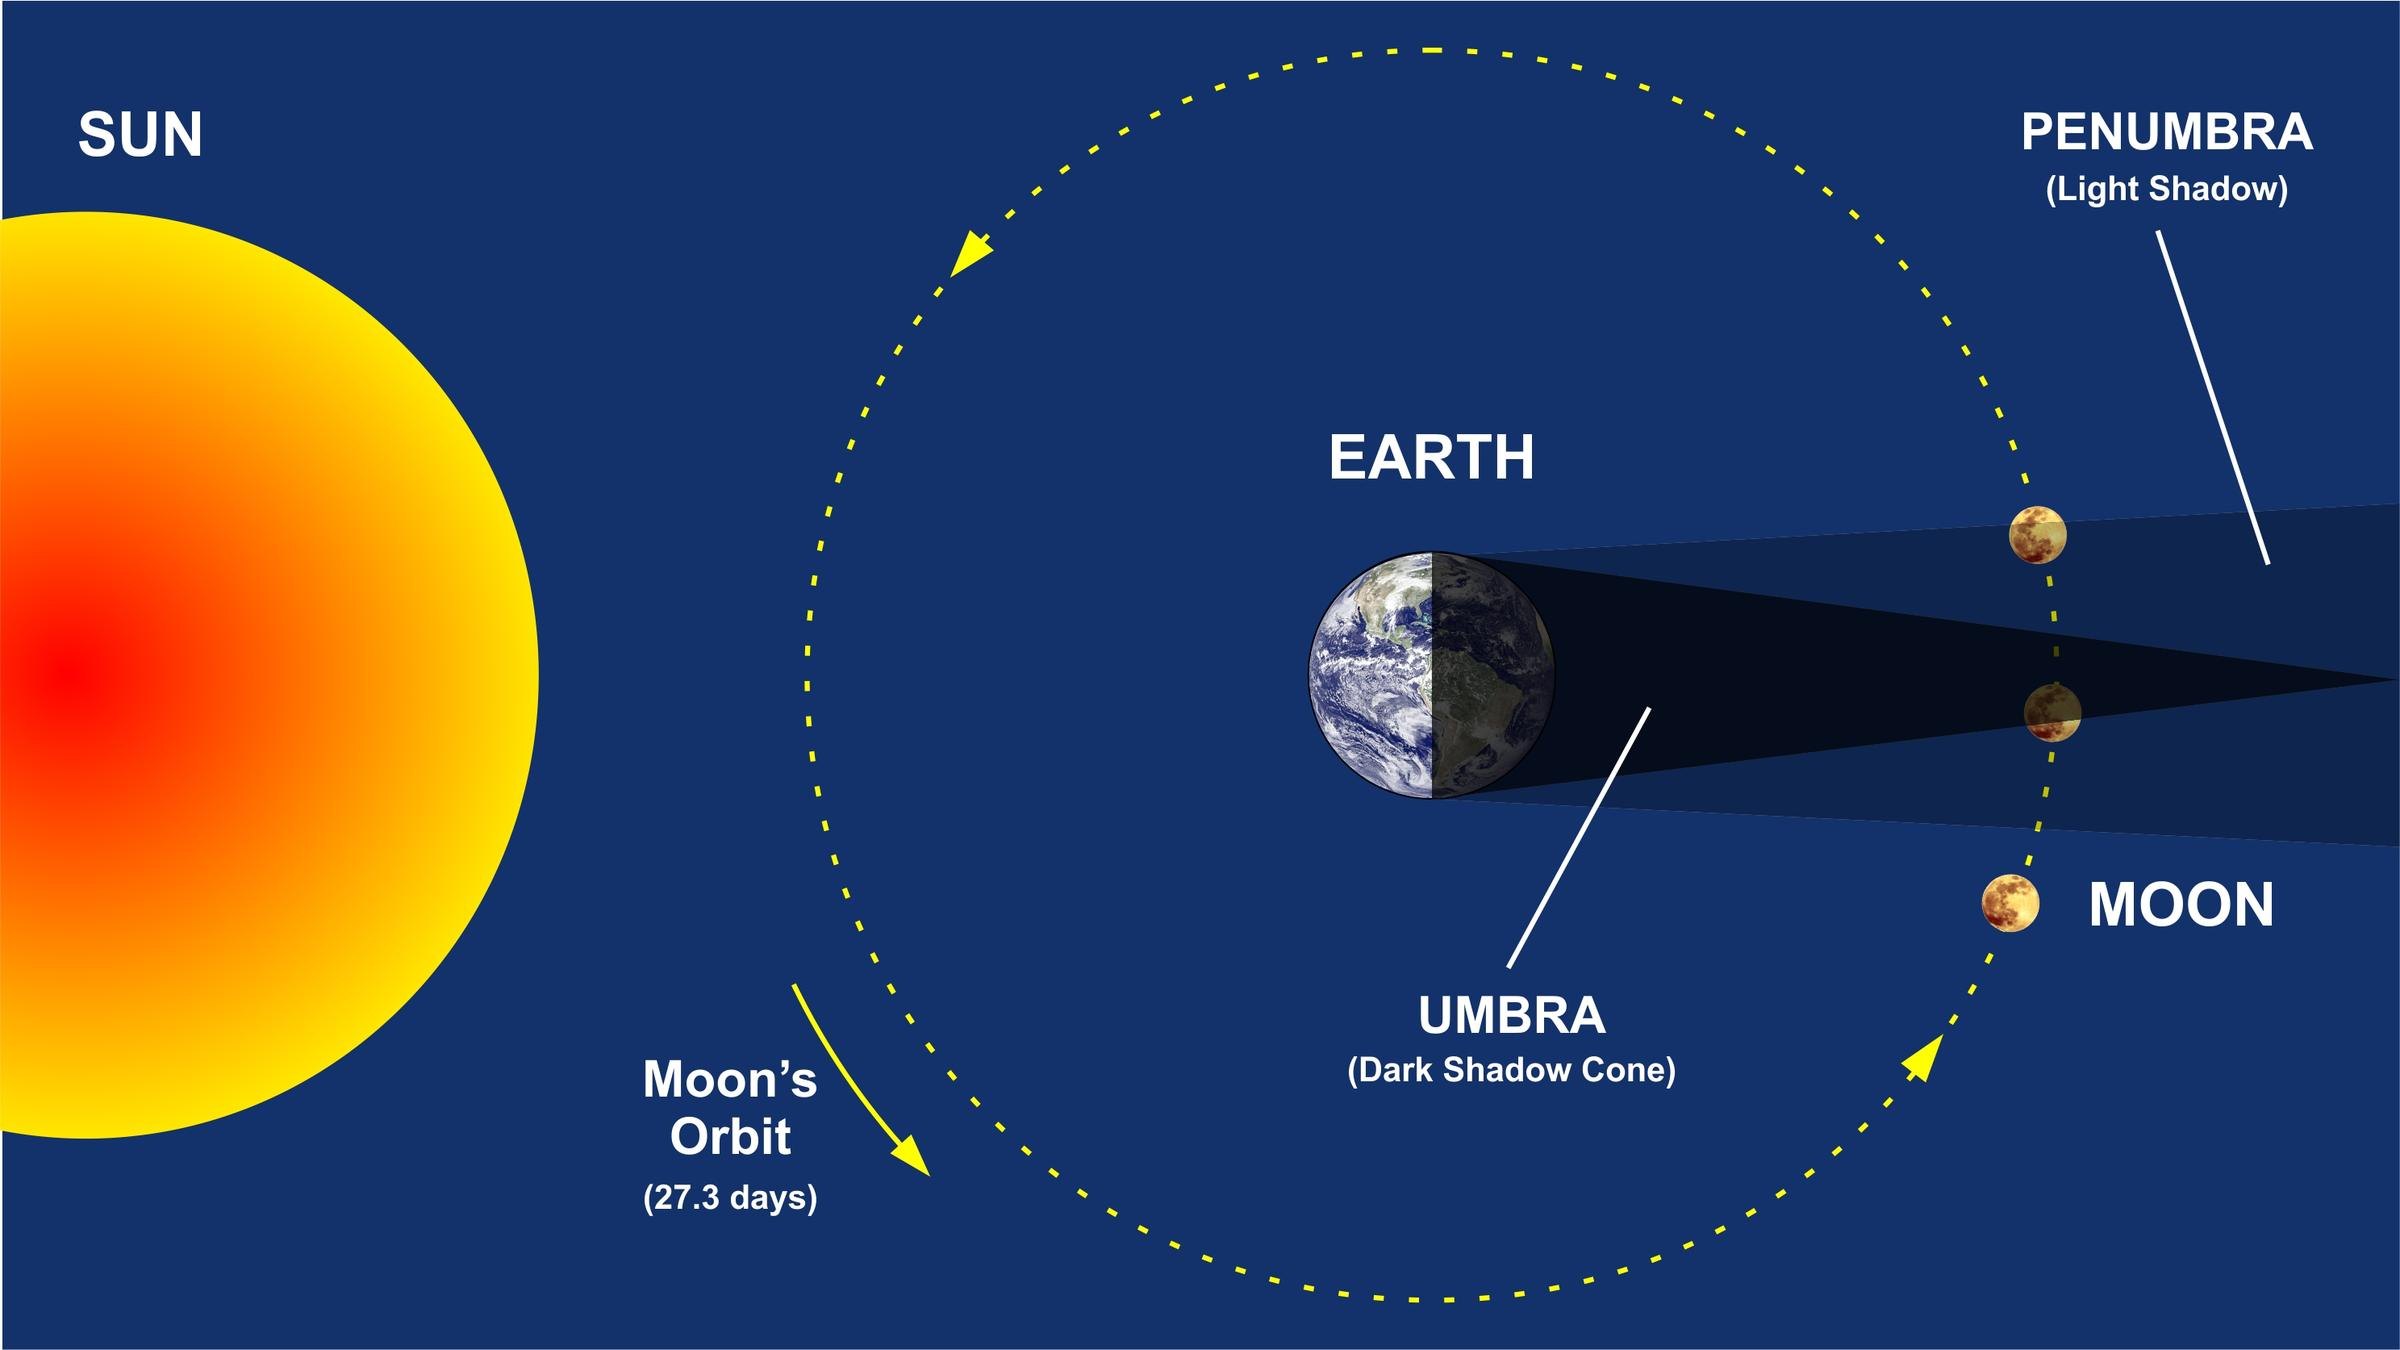 Lunar Eclipse Diagram Skygazers In Manatee County Can View Total Lunar Eclipse At